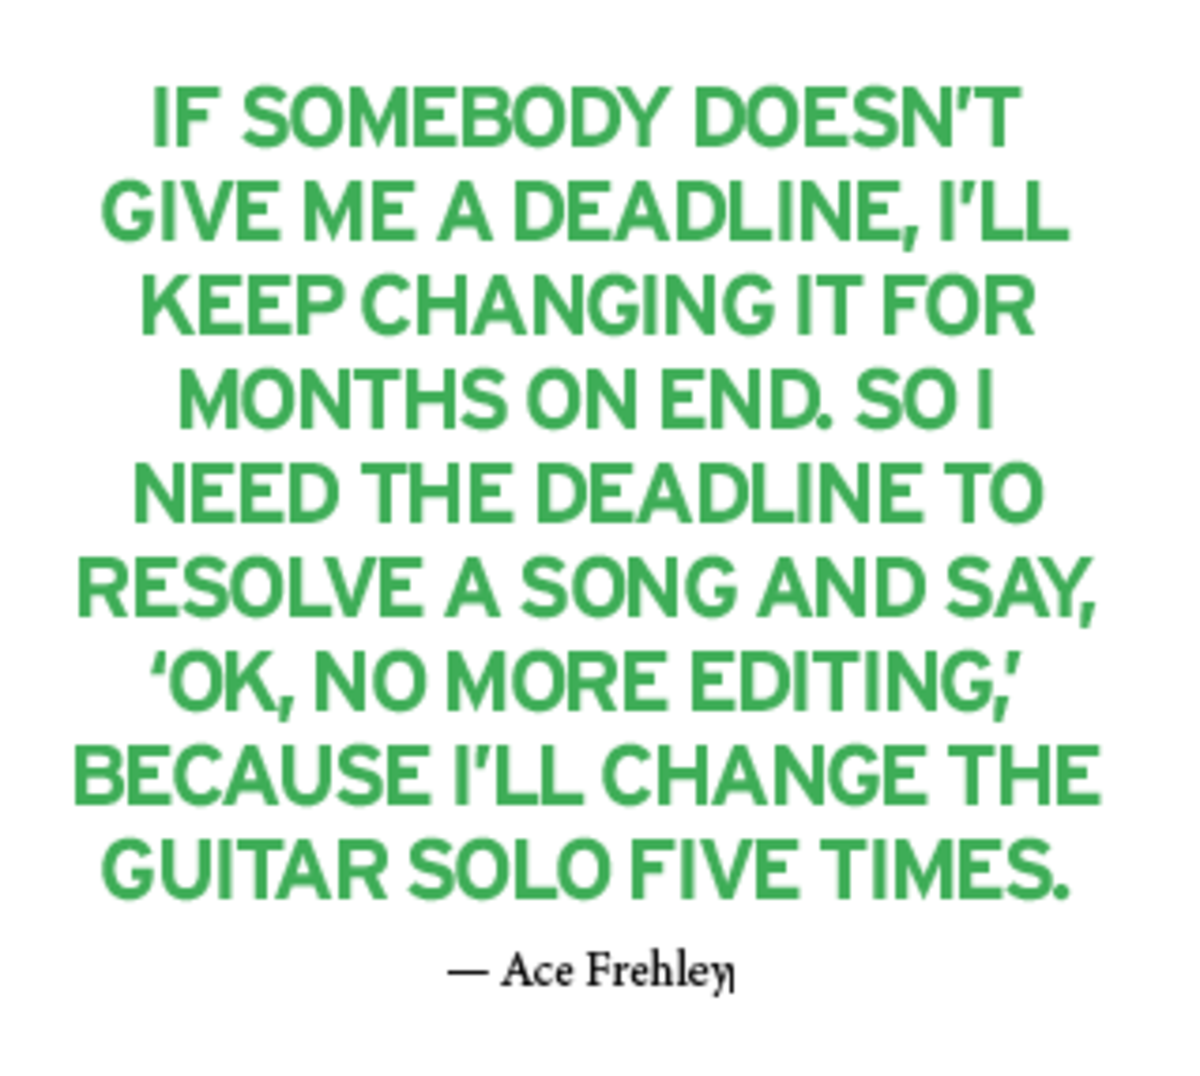 Ace Frehley KISS guitarist pull quote